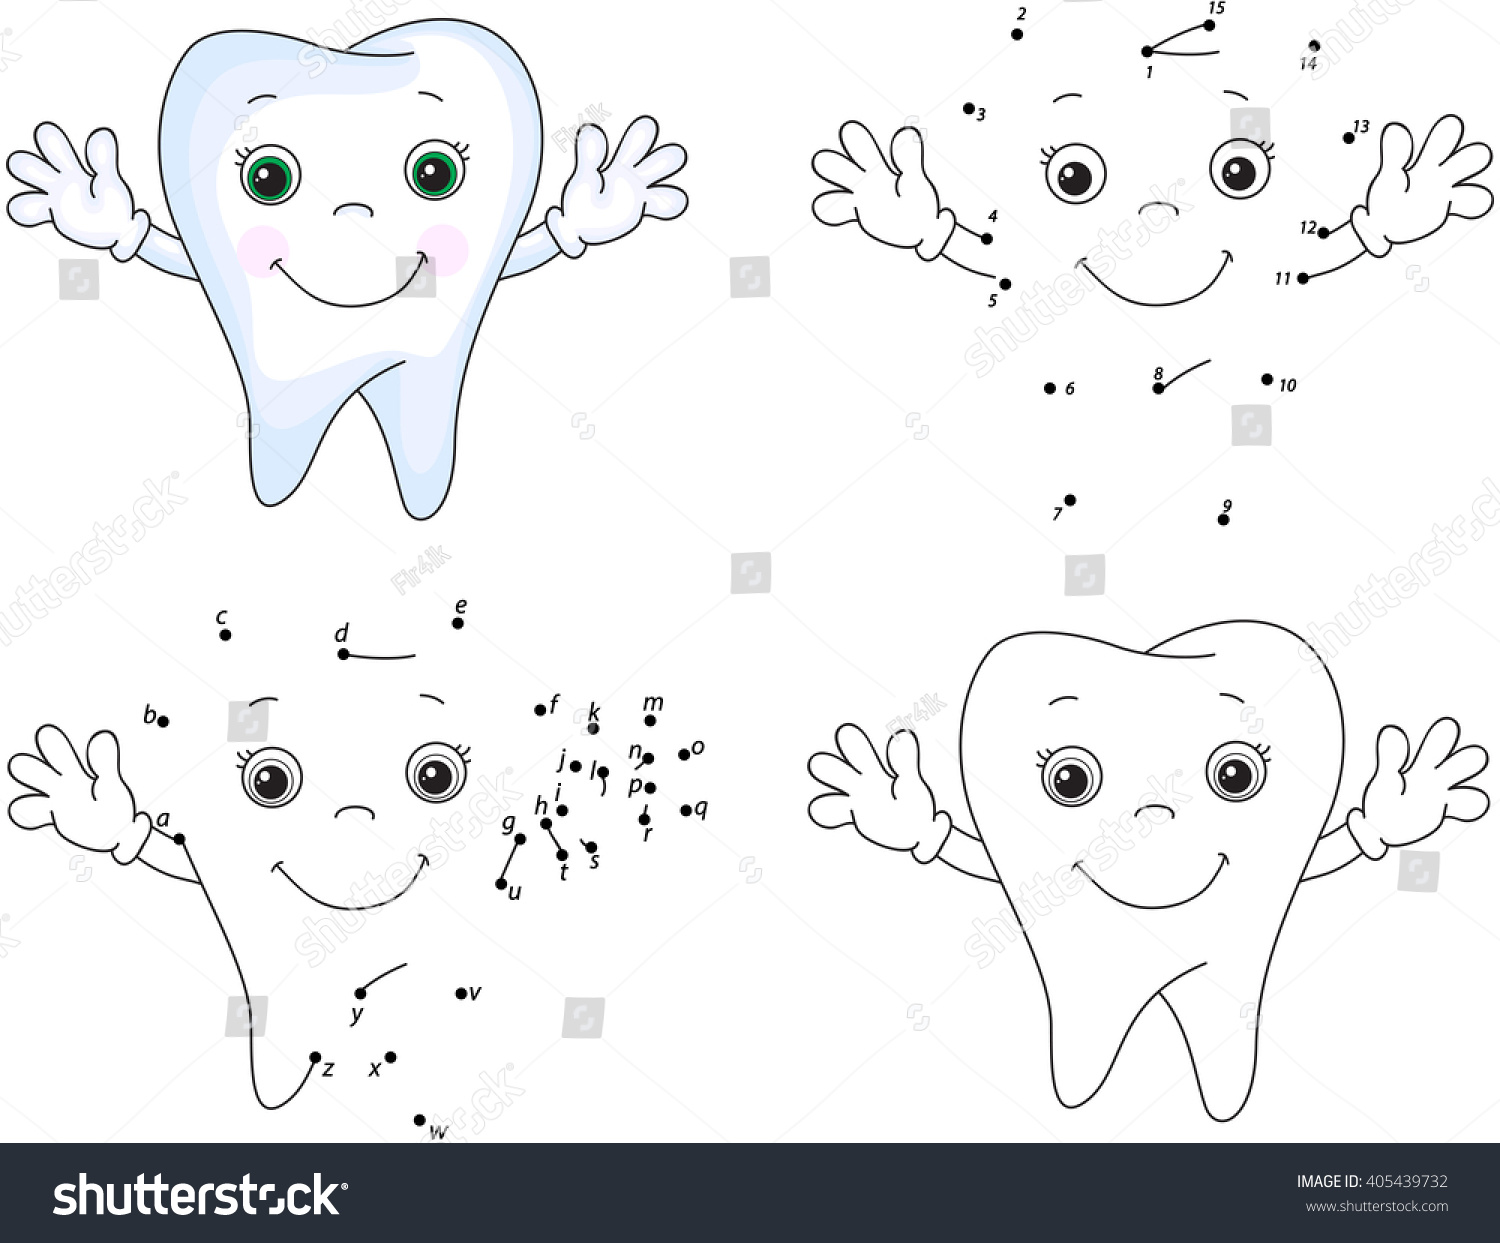 Cartoon Tooth Smiles Coloring Book Dot Stock Illustration